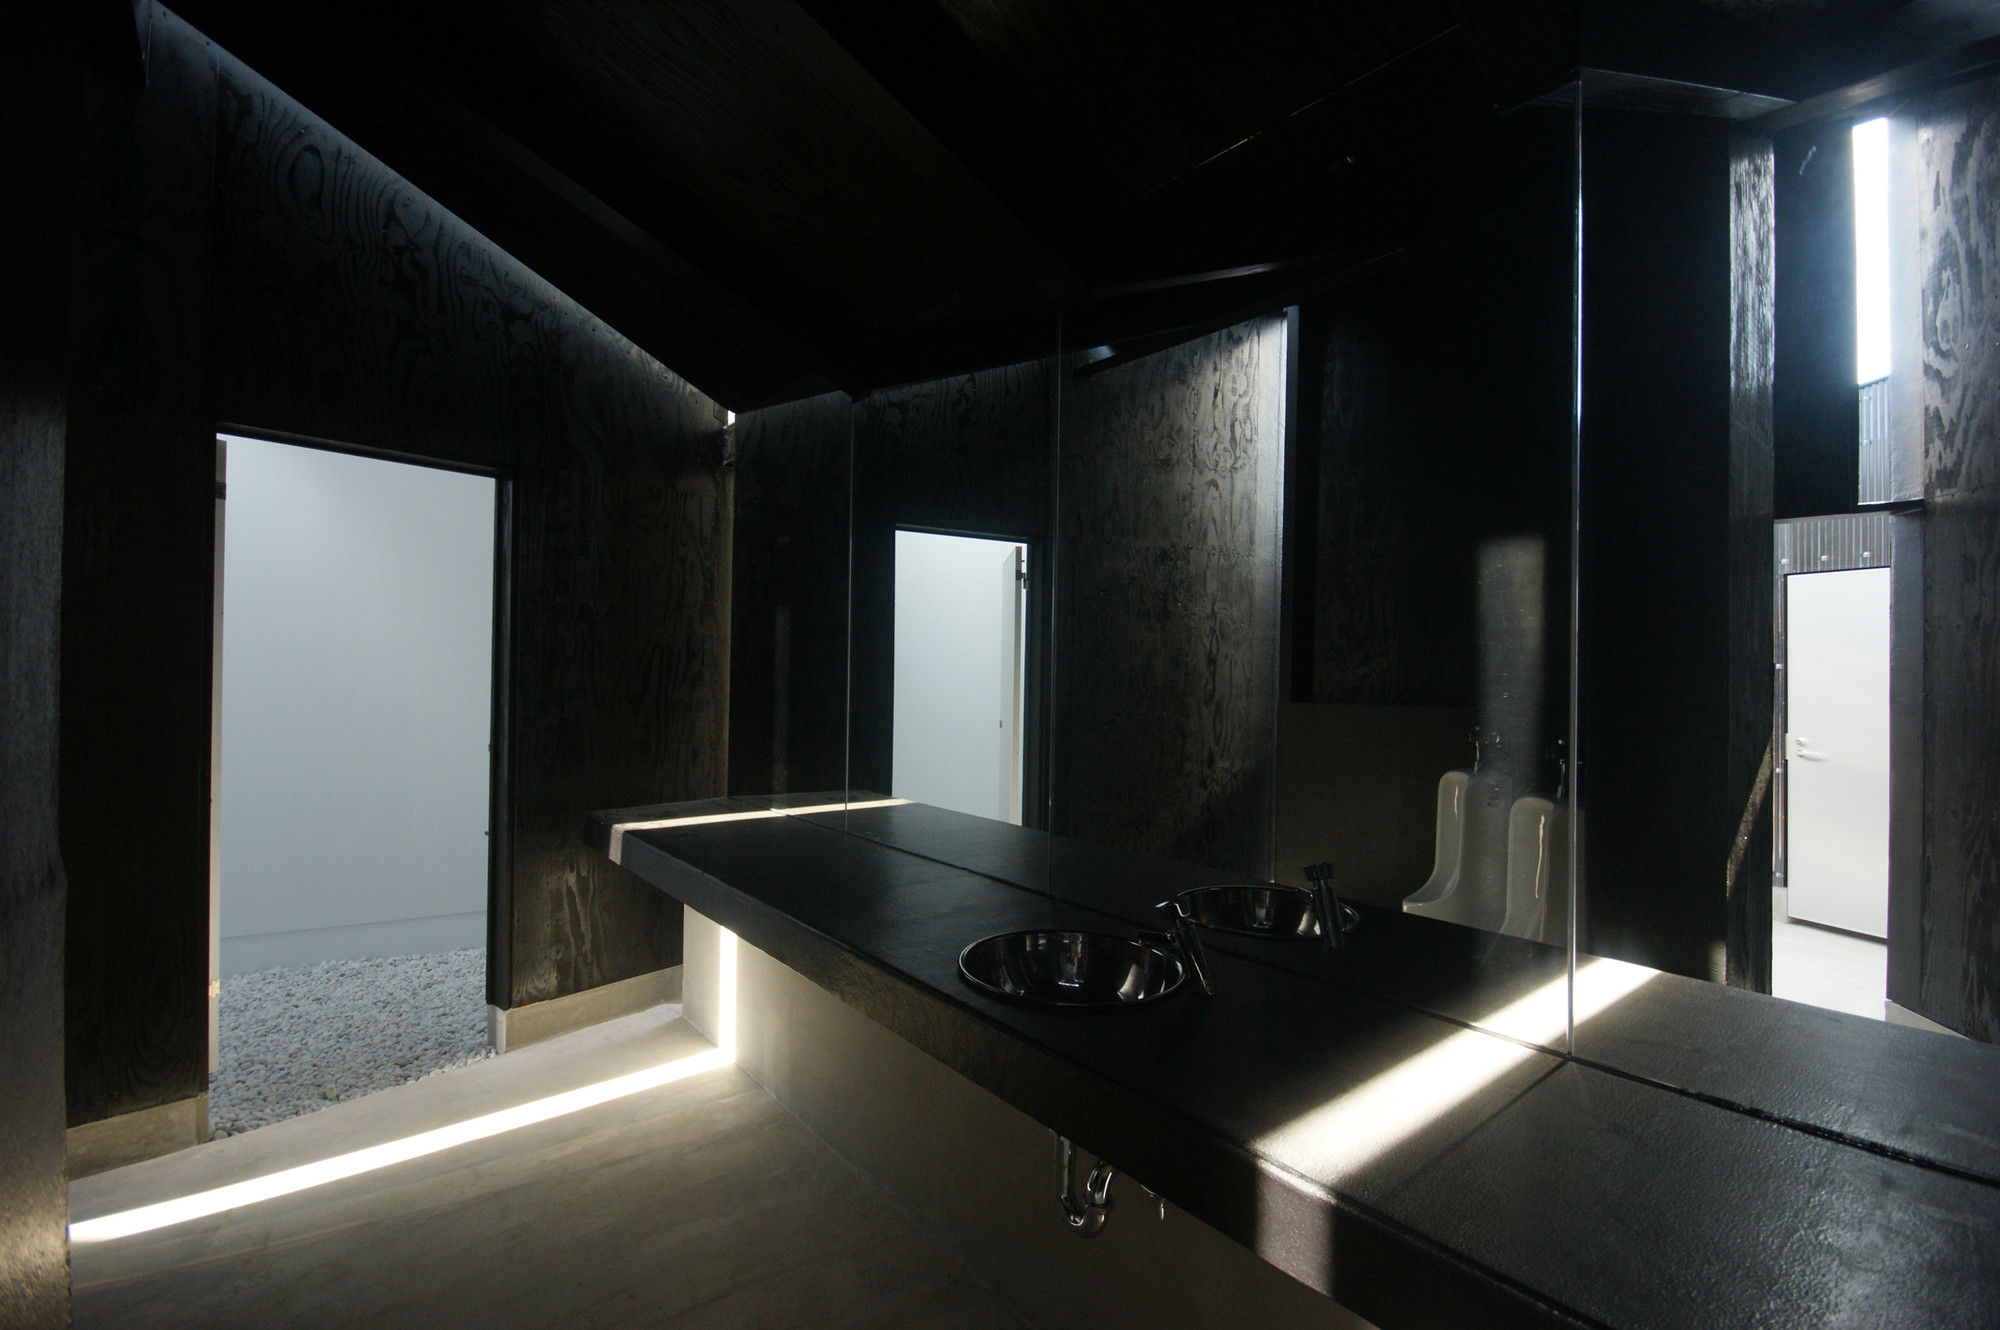 Gallery of House of Toilet / Daigo Ishii + Future-scape Architects - 33